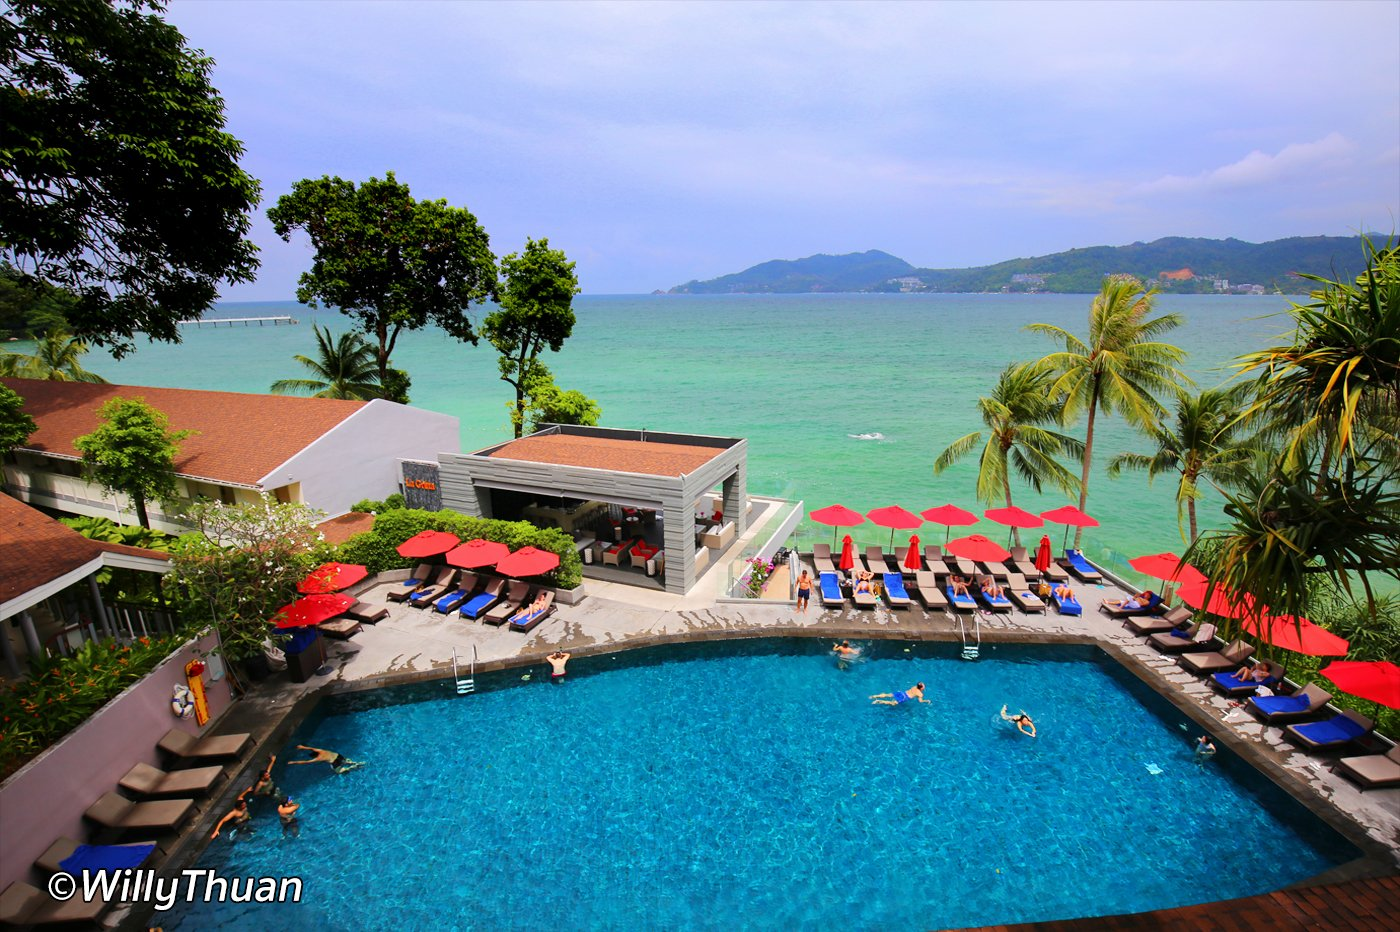 Amari Phuket Resort in Patong –  A Weekend at Amari Phuket